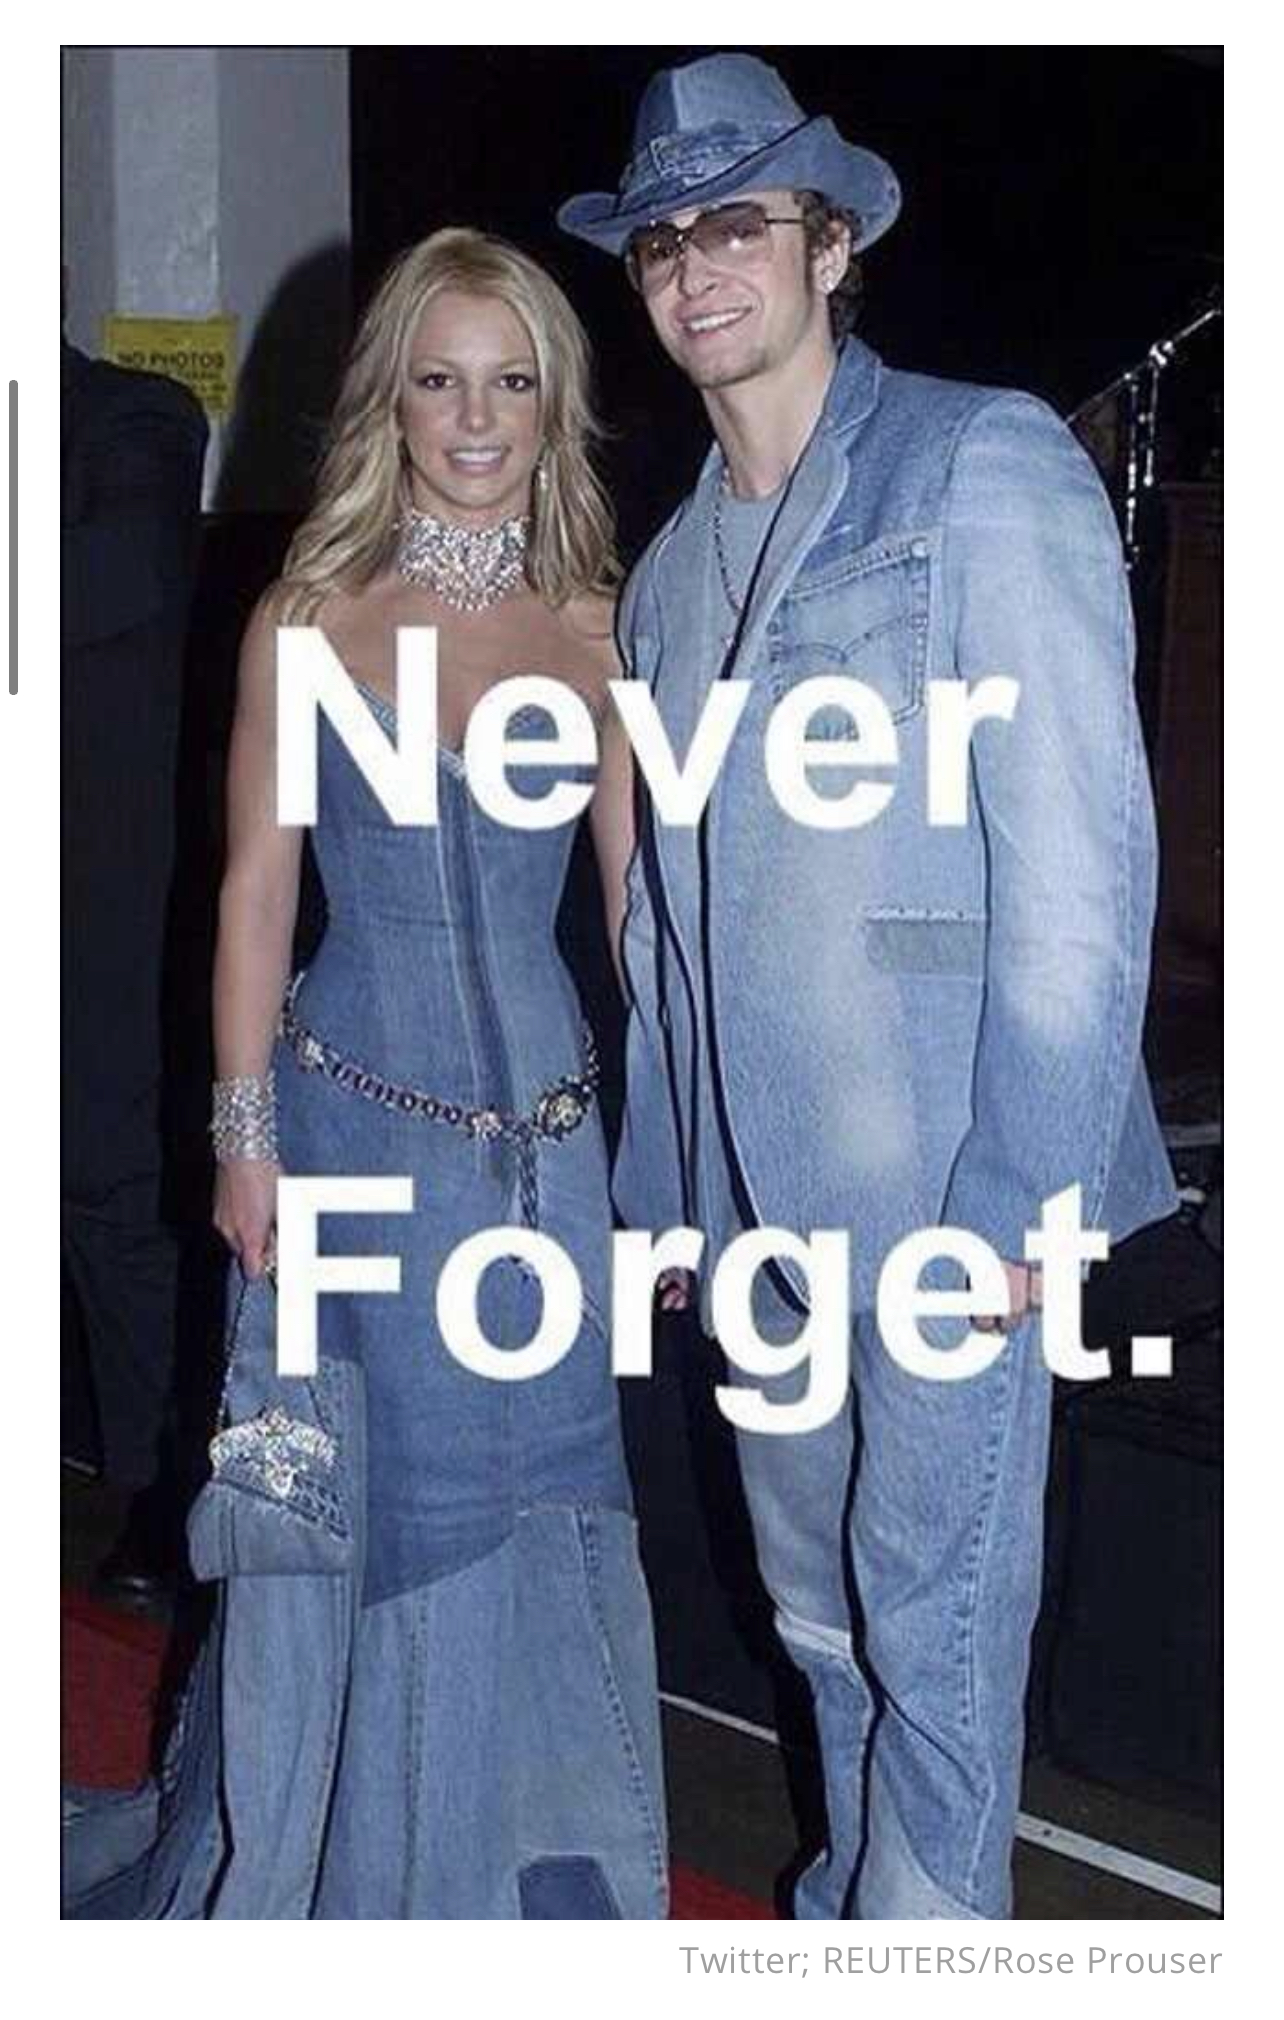 britney spears and justin timberlake from mylie cyrus twitter